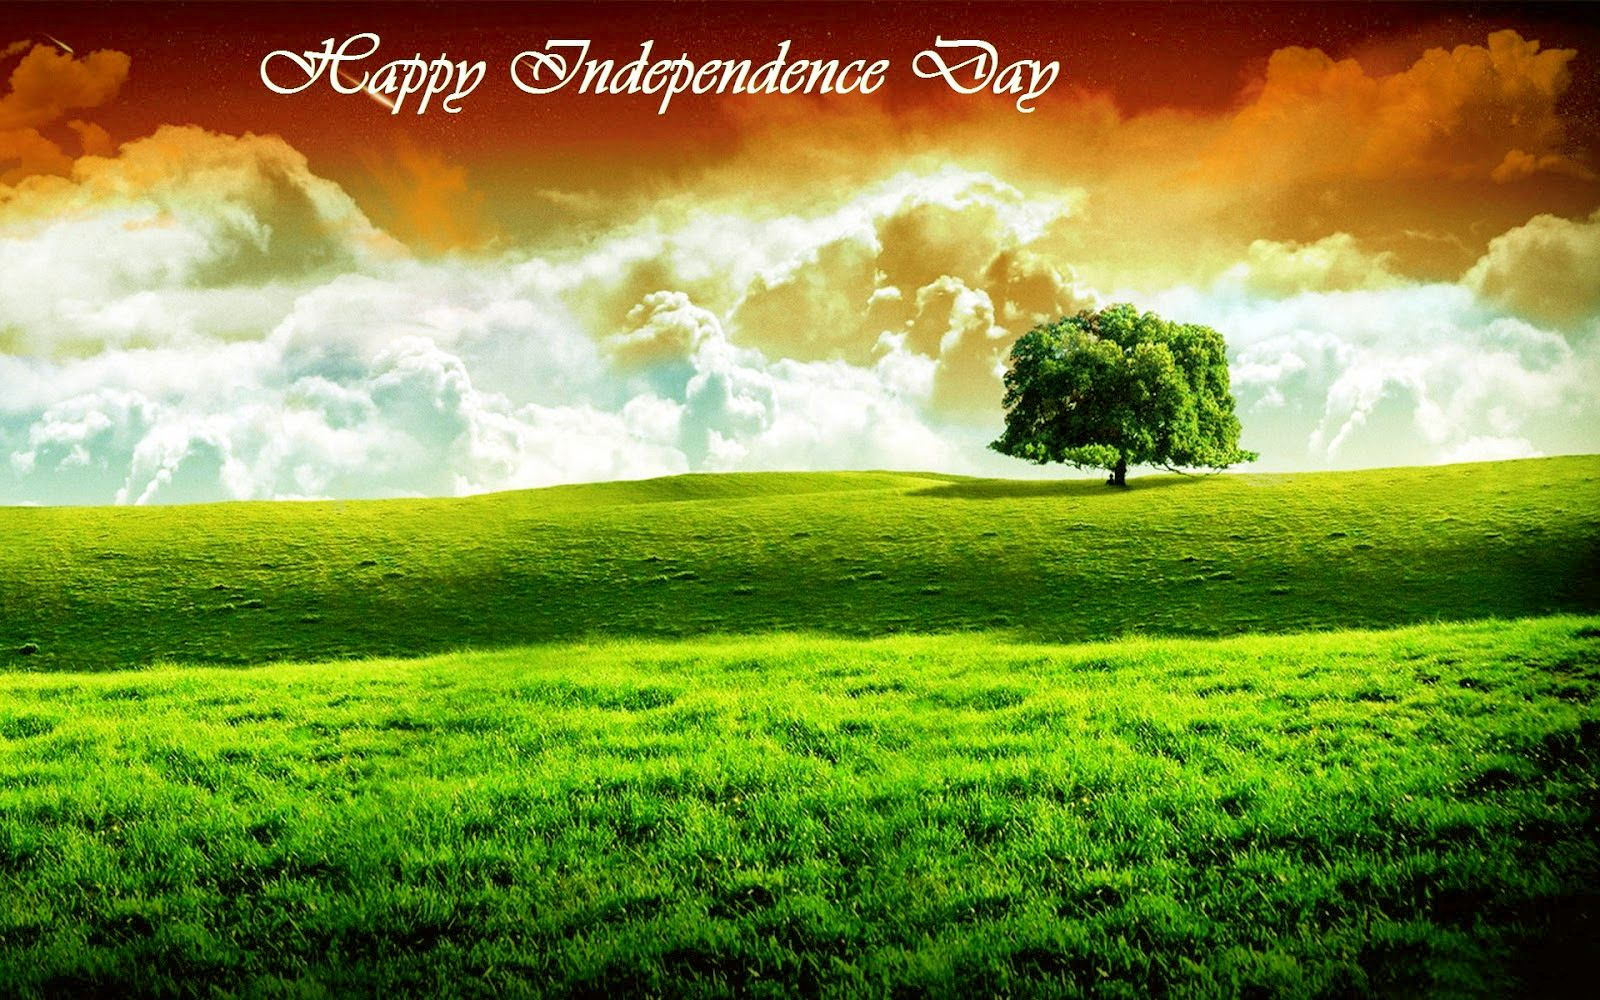 Independence Day Wallpapers Free Download Images Beautiful Wallpaper Scenery Wallpaper Beautiful Nature Scenes Nature Scenes